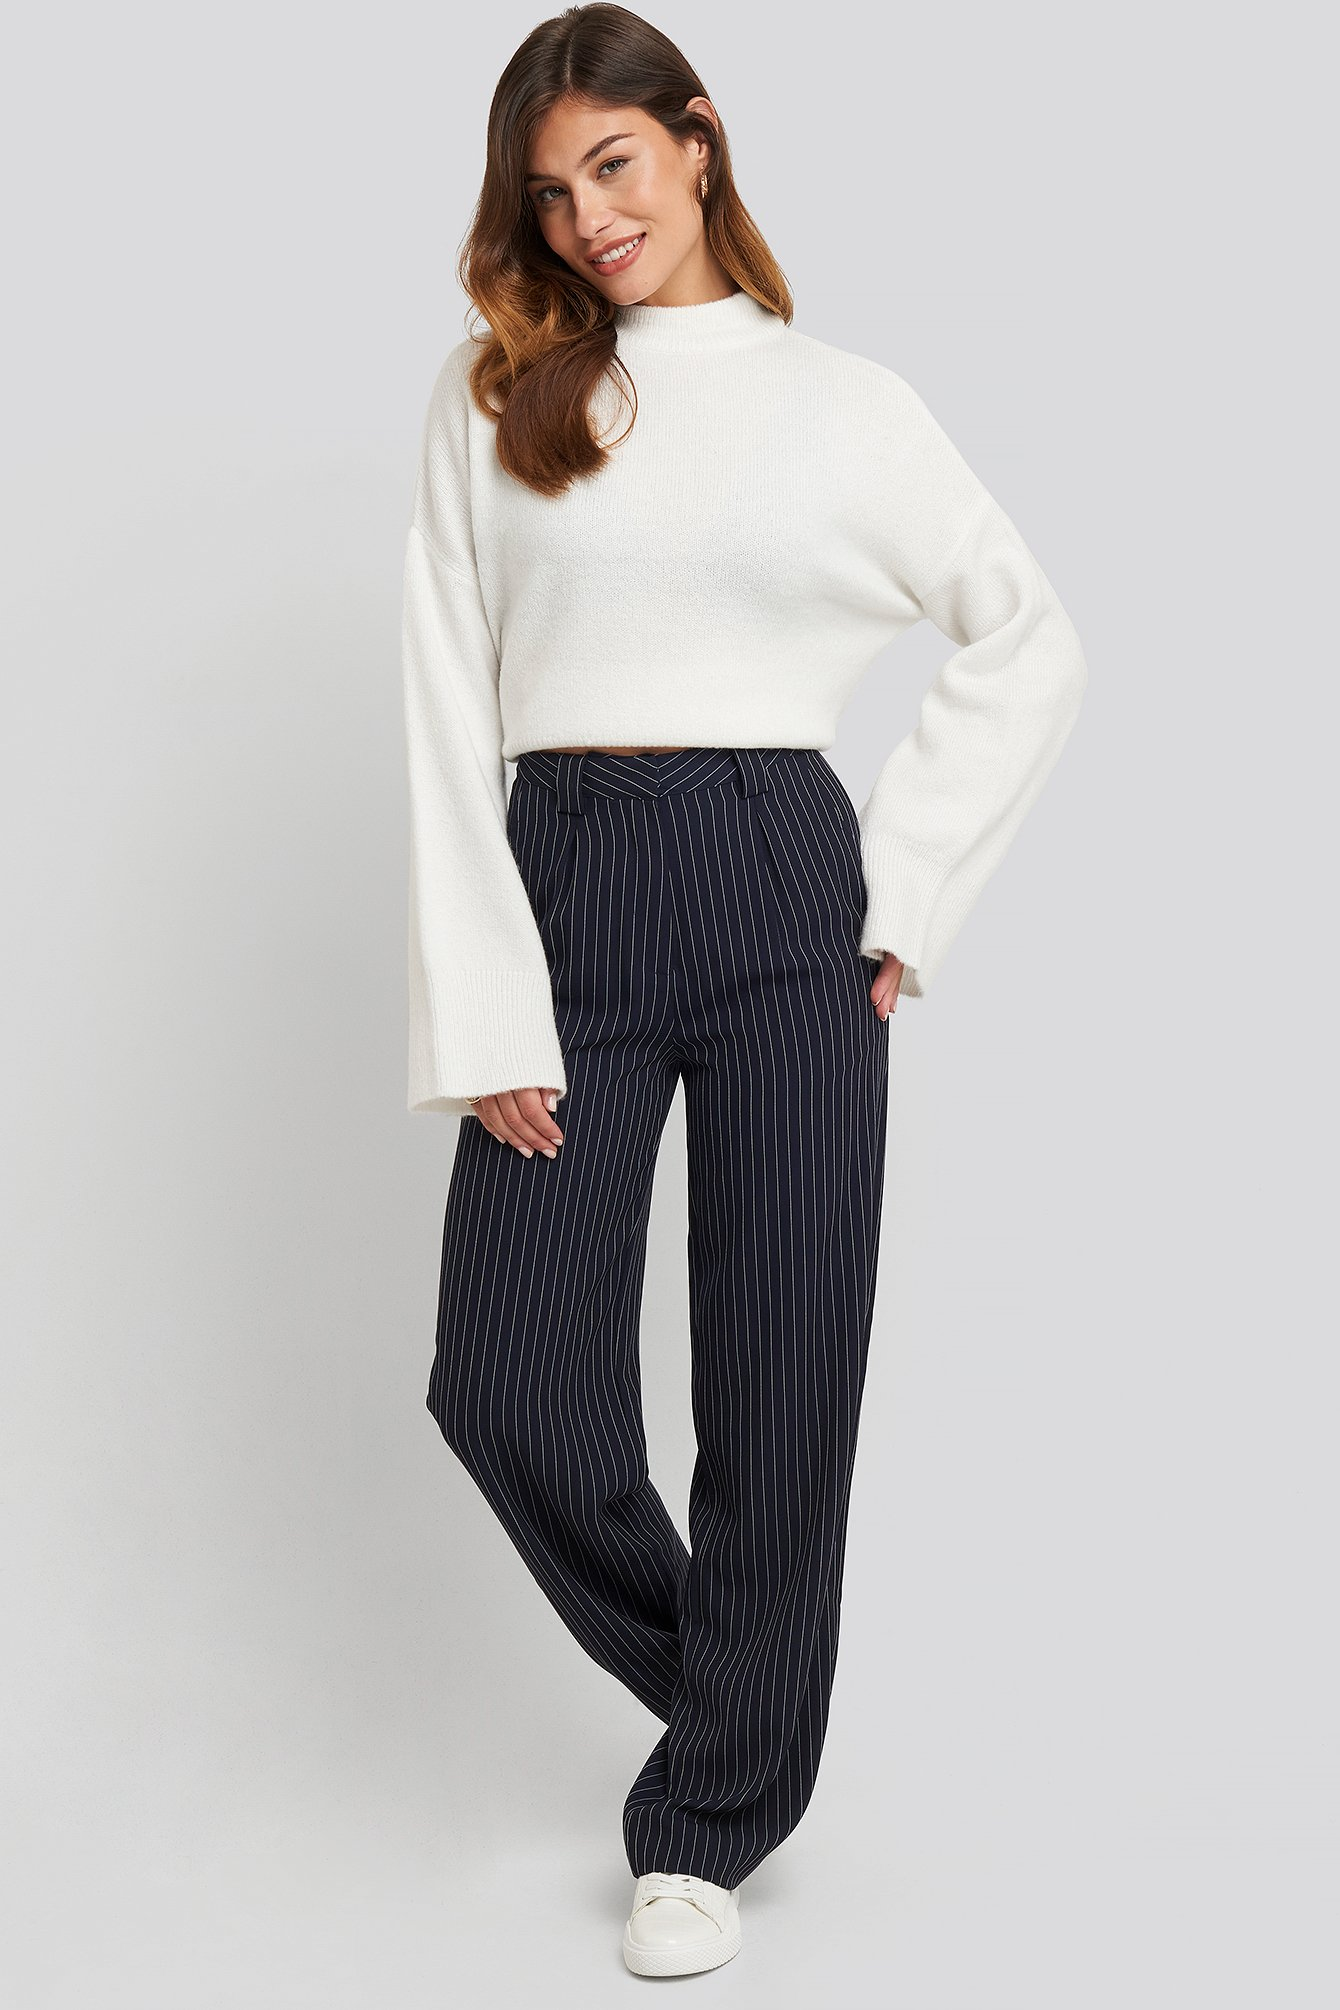 Dark Navy Flared Striped Pants